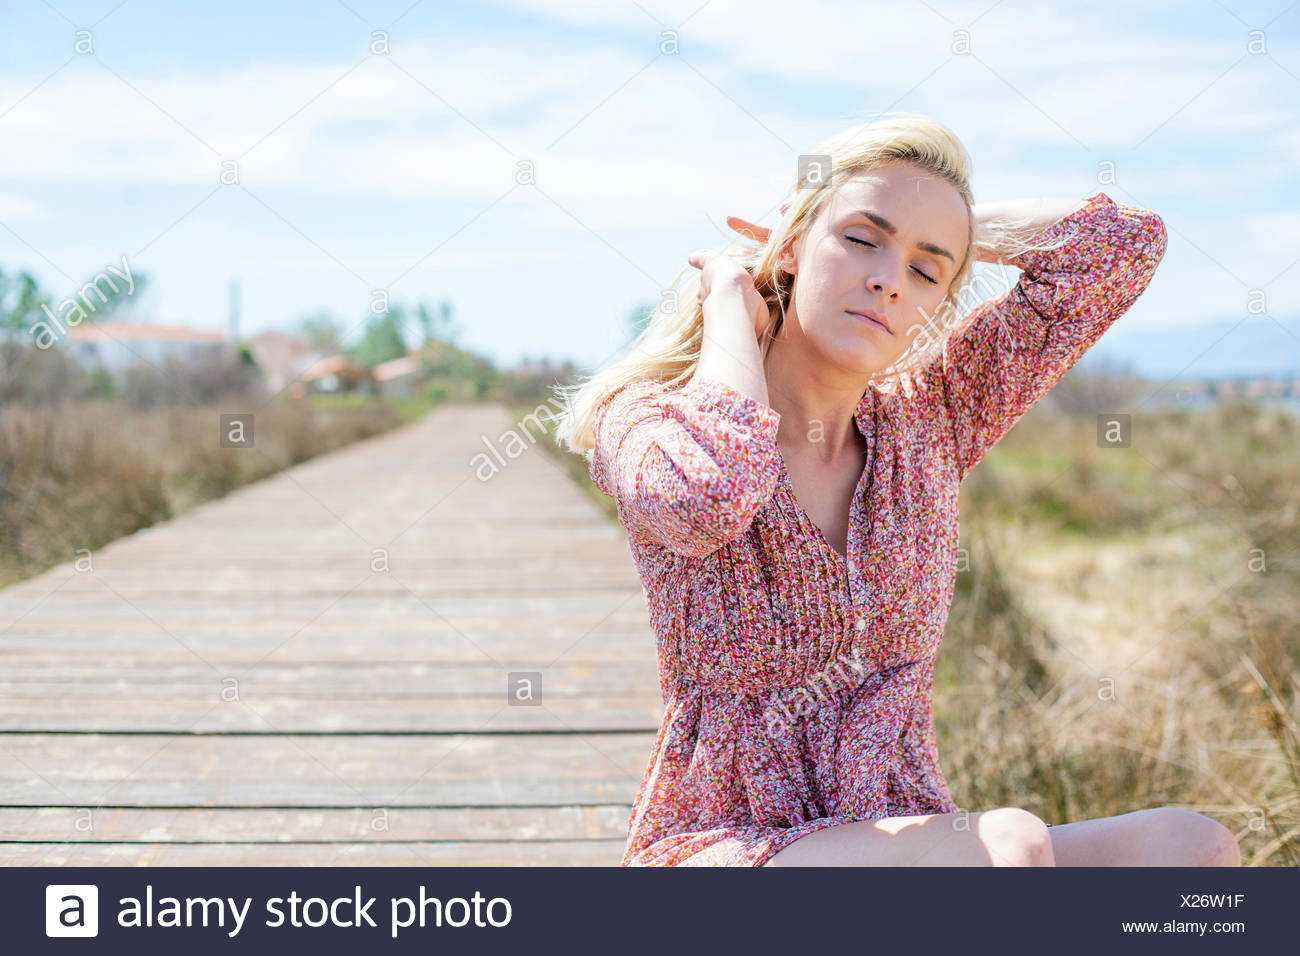 Young woman sitting on boardwalk eyes closed - Stock Image